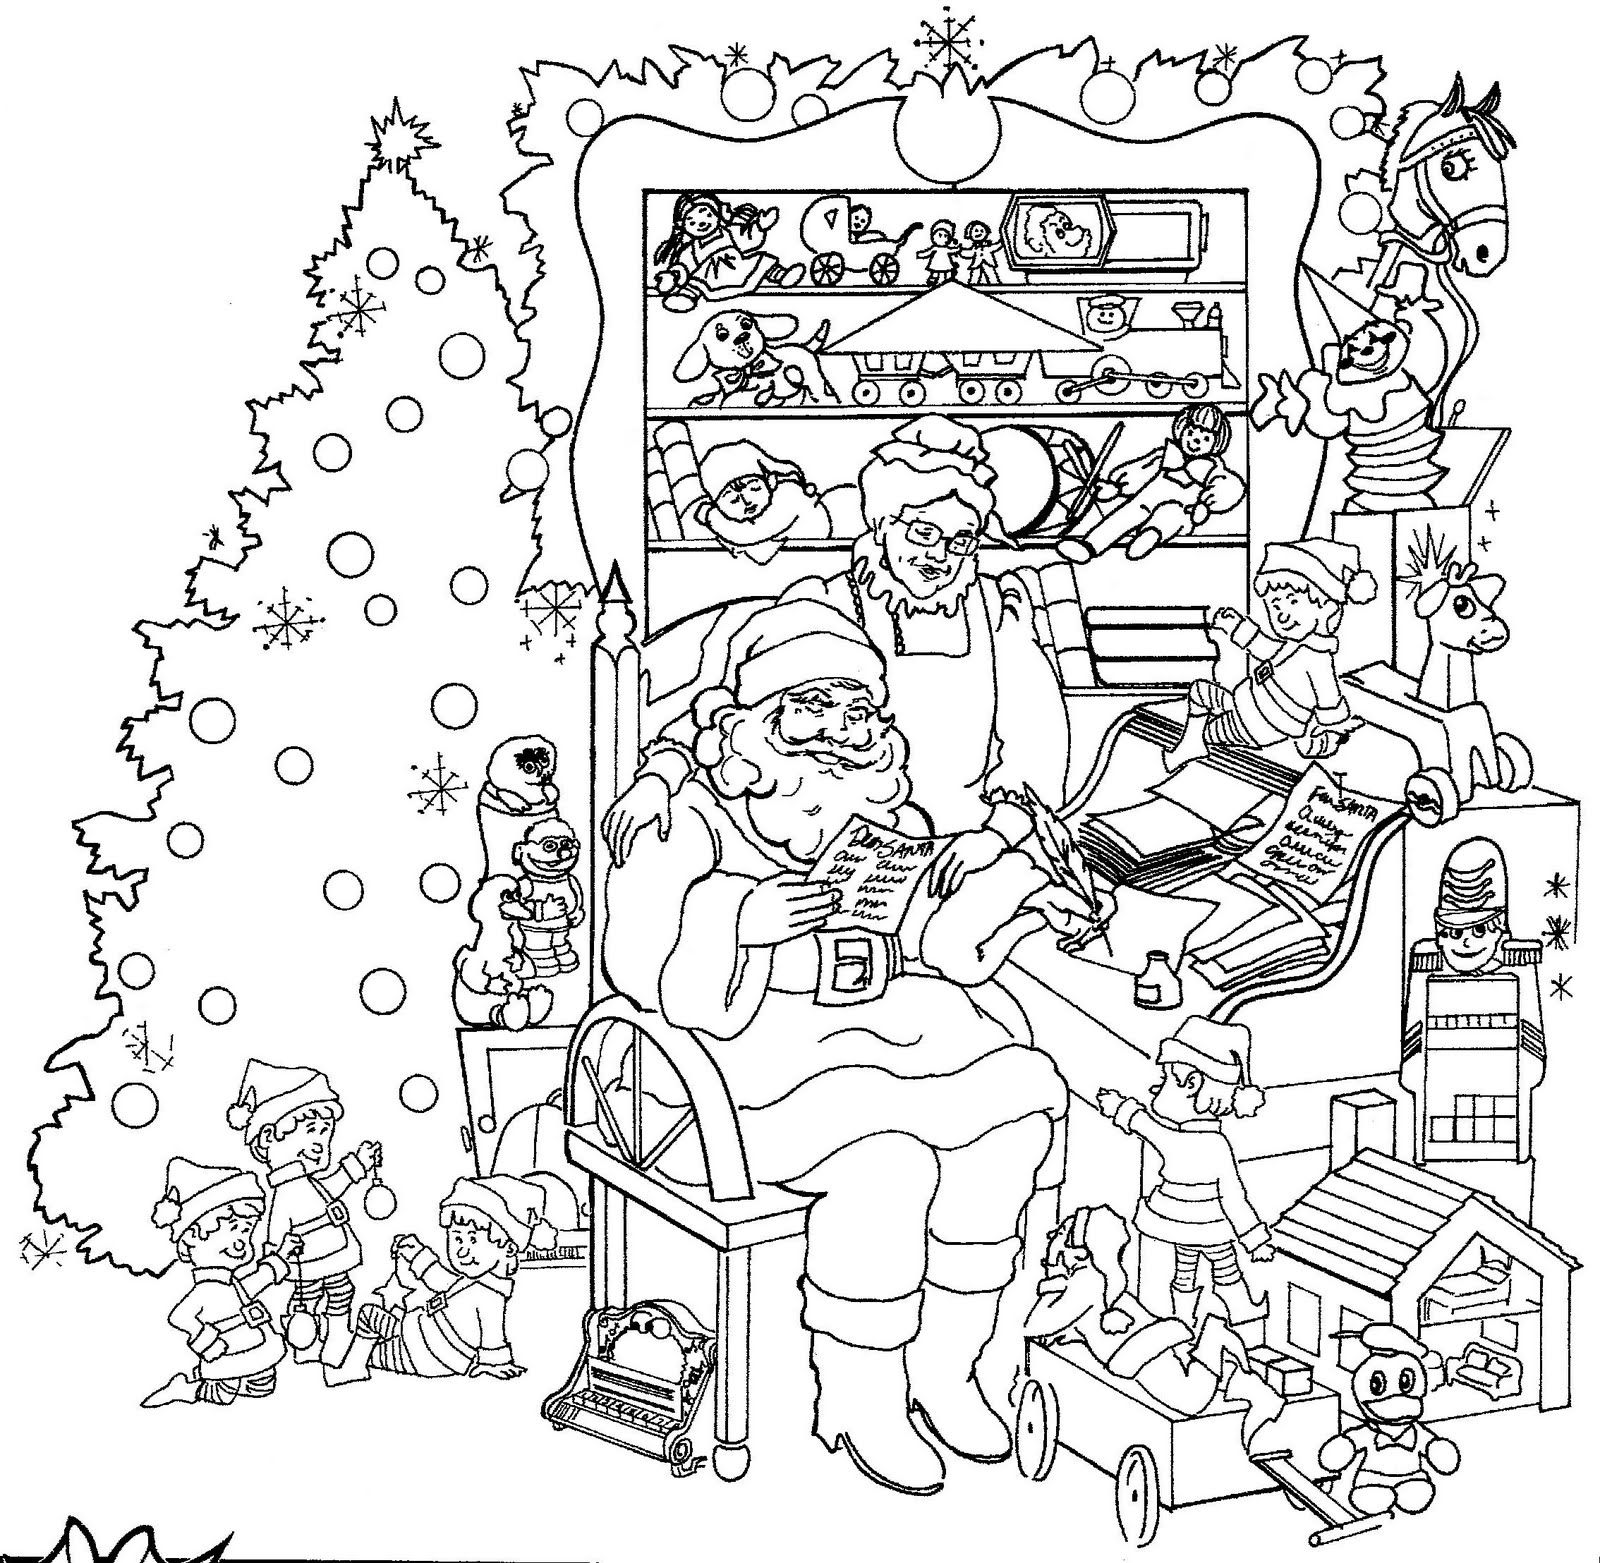 Coloring pages for christmas - Detailed Christmas Coloring Pages Christmas Coloring Contest 1981